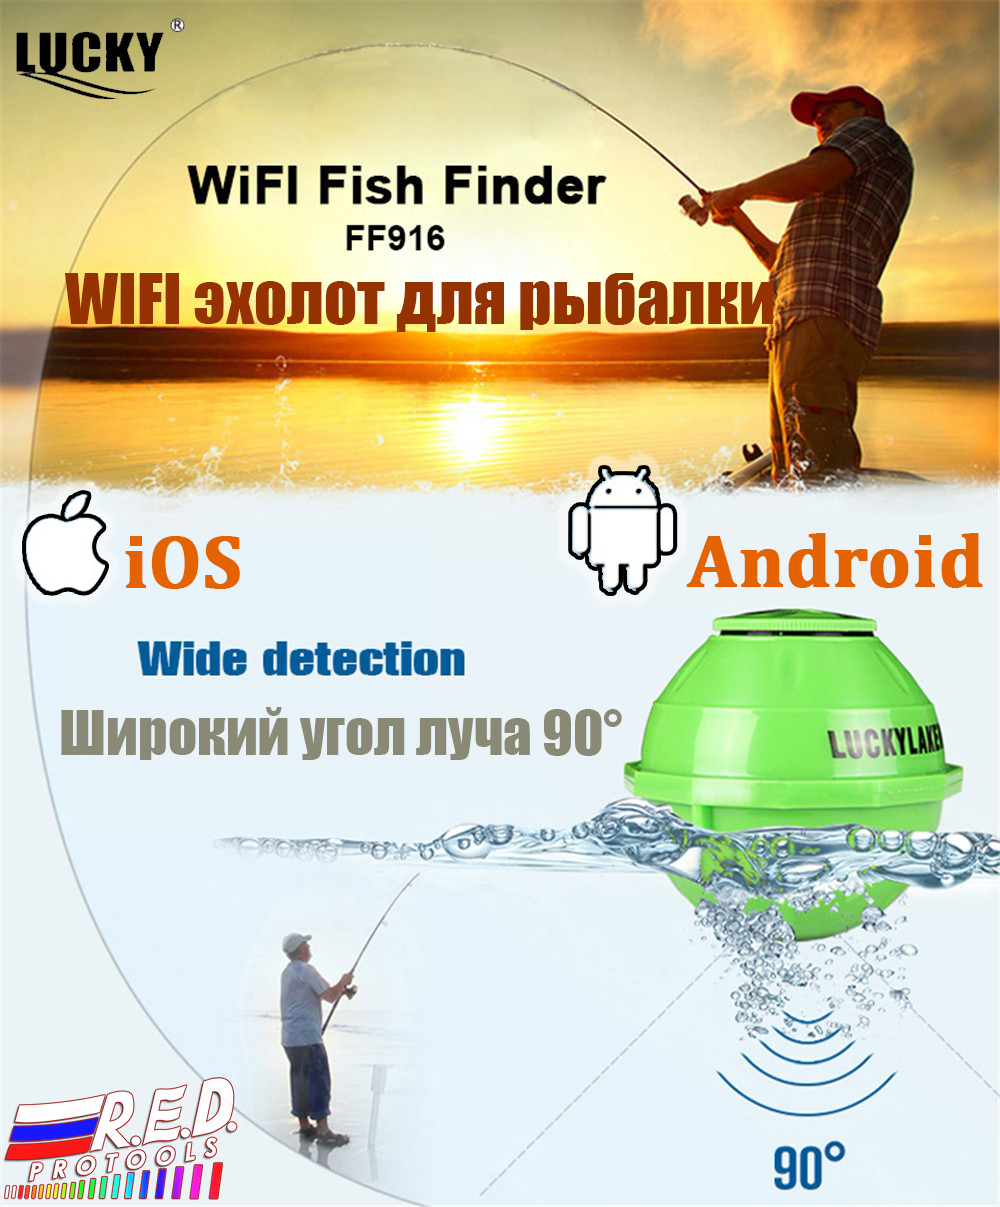 цена на Lucky FF 916 WI FI fish finder Sonar Wireless WIFI 50 M Operation Range Rechargeable Lithuim Battery sonar Android IOS